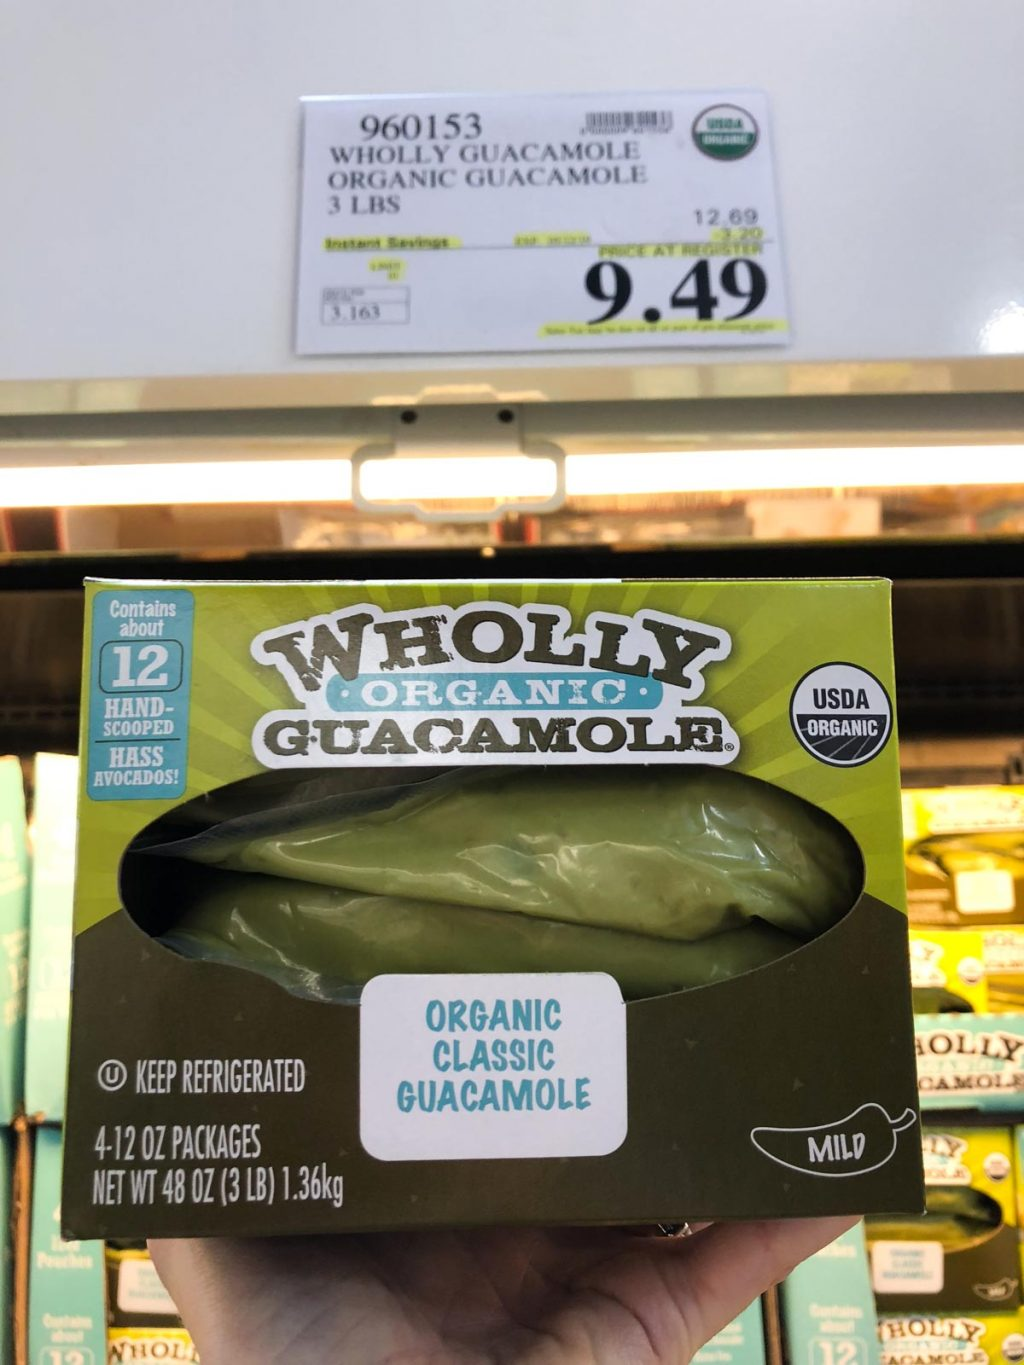 A hand holding a box of organic vegan Wholly Guacamole for $9.49 at Costco.